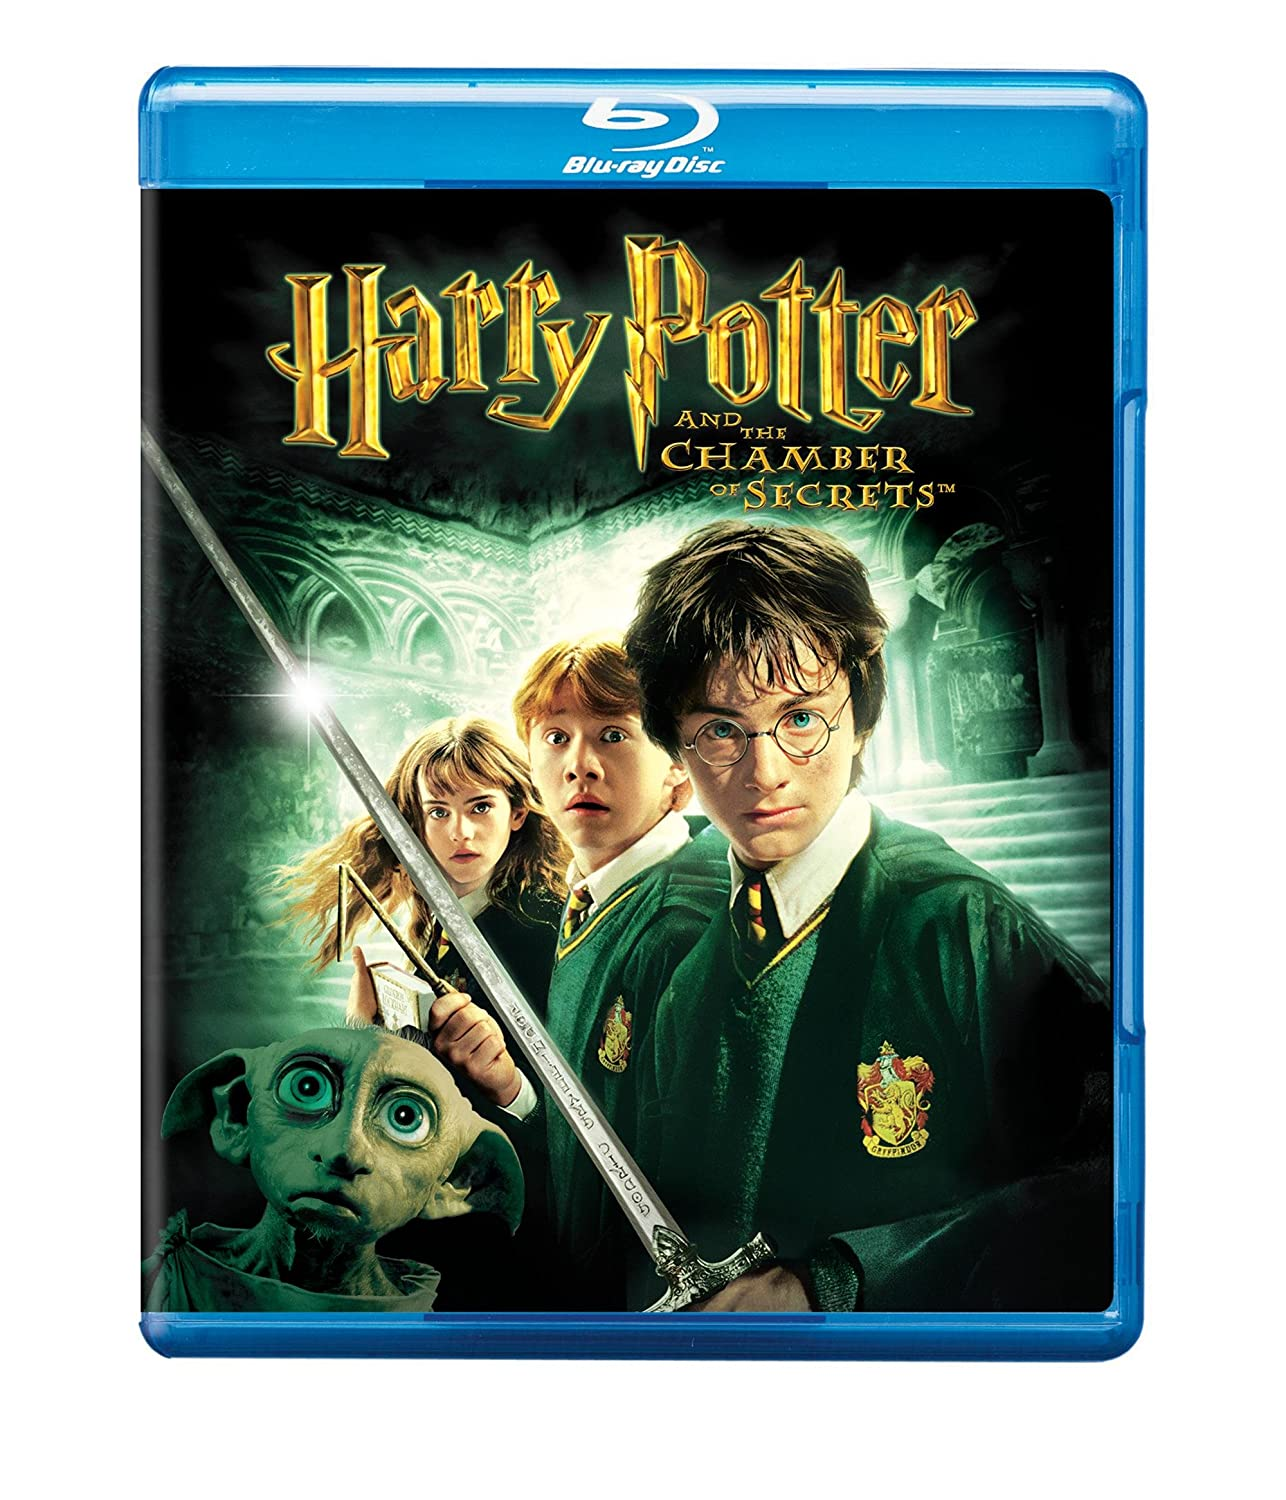 com harry potter and the chamber of secrets blu ray com harry potter and the chamber of secrets blu ray daniel radcliffe rupert grint emma watson richard griffiths fiona shaw harry melling